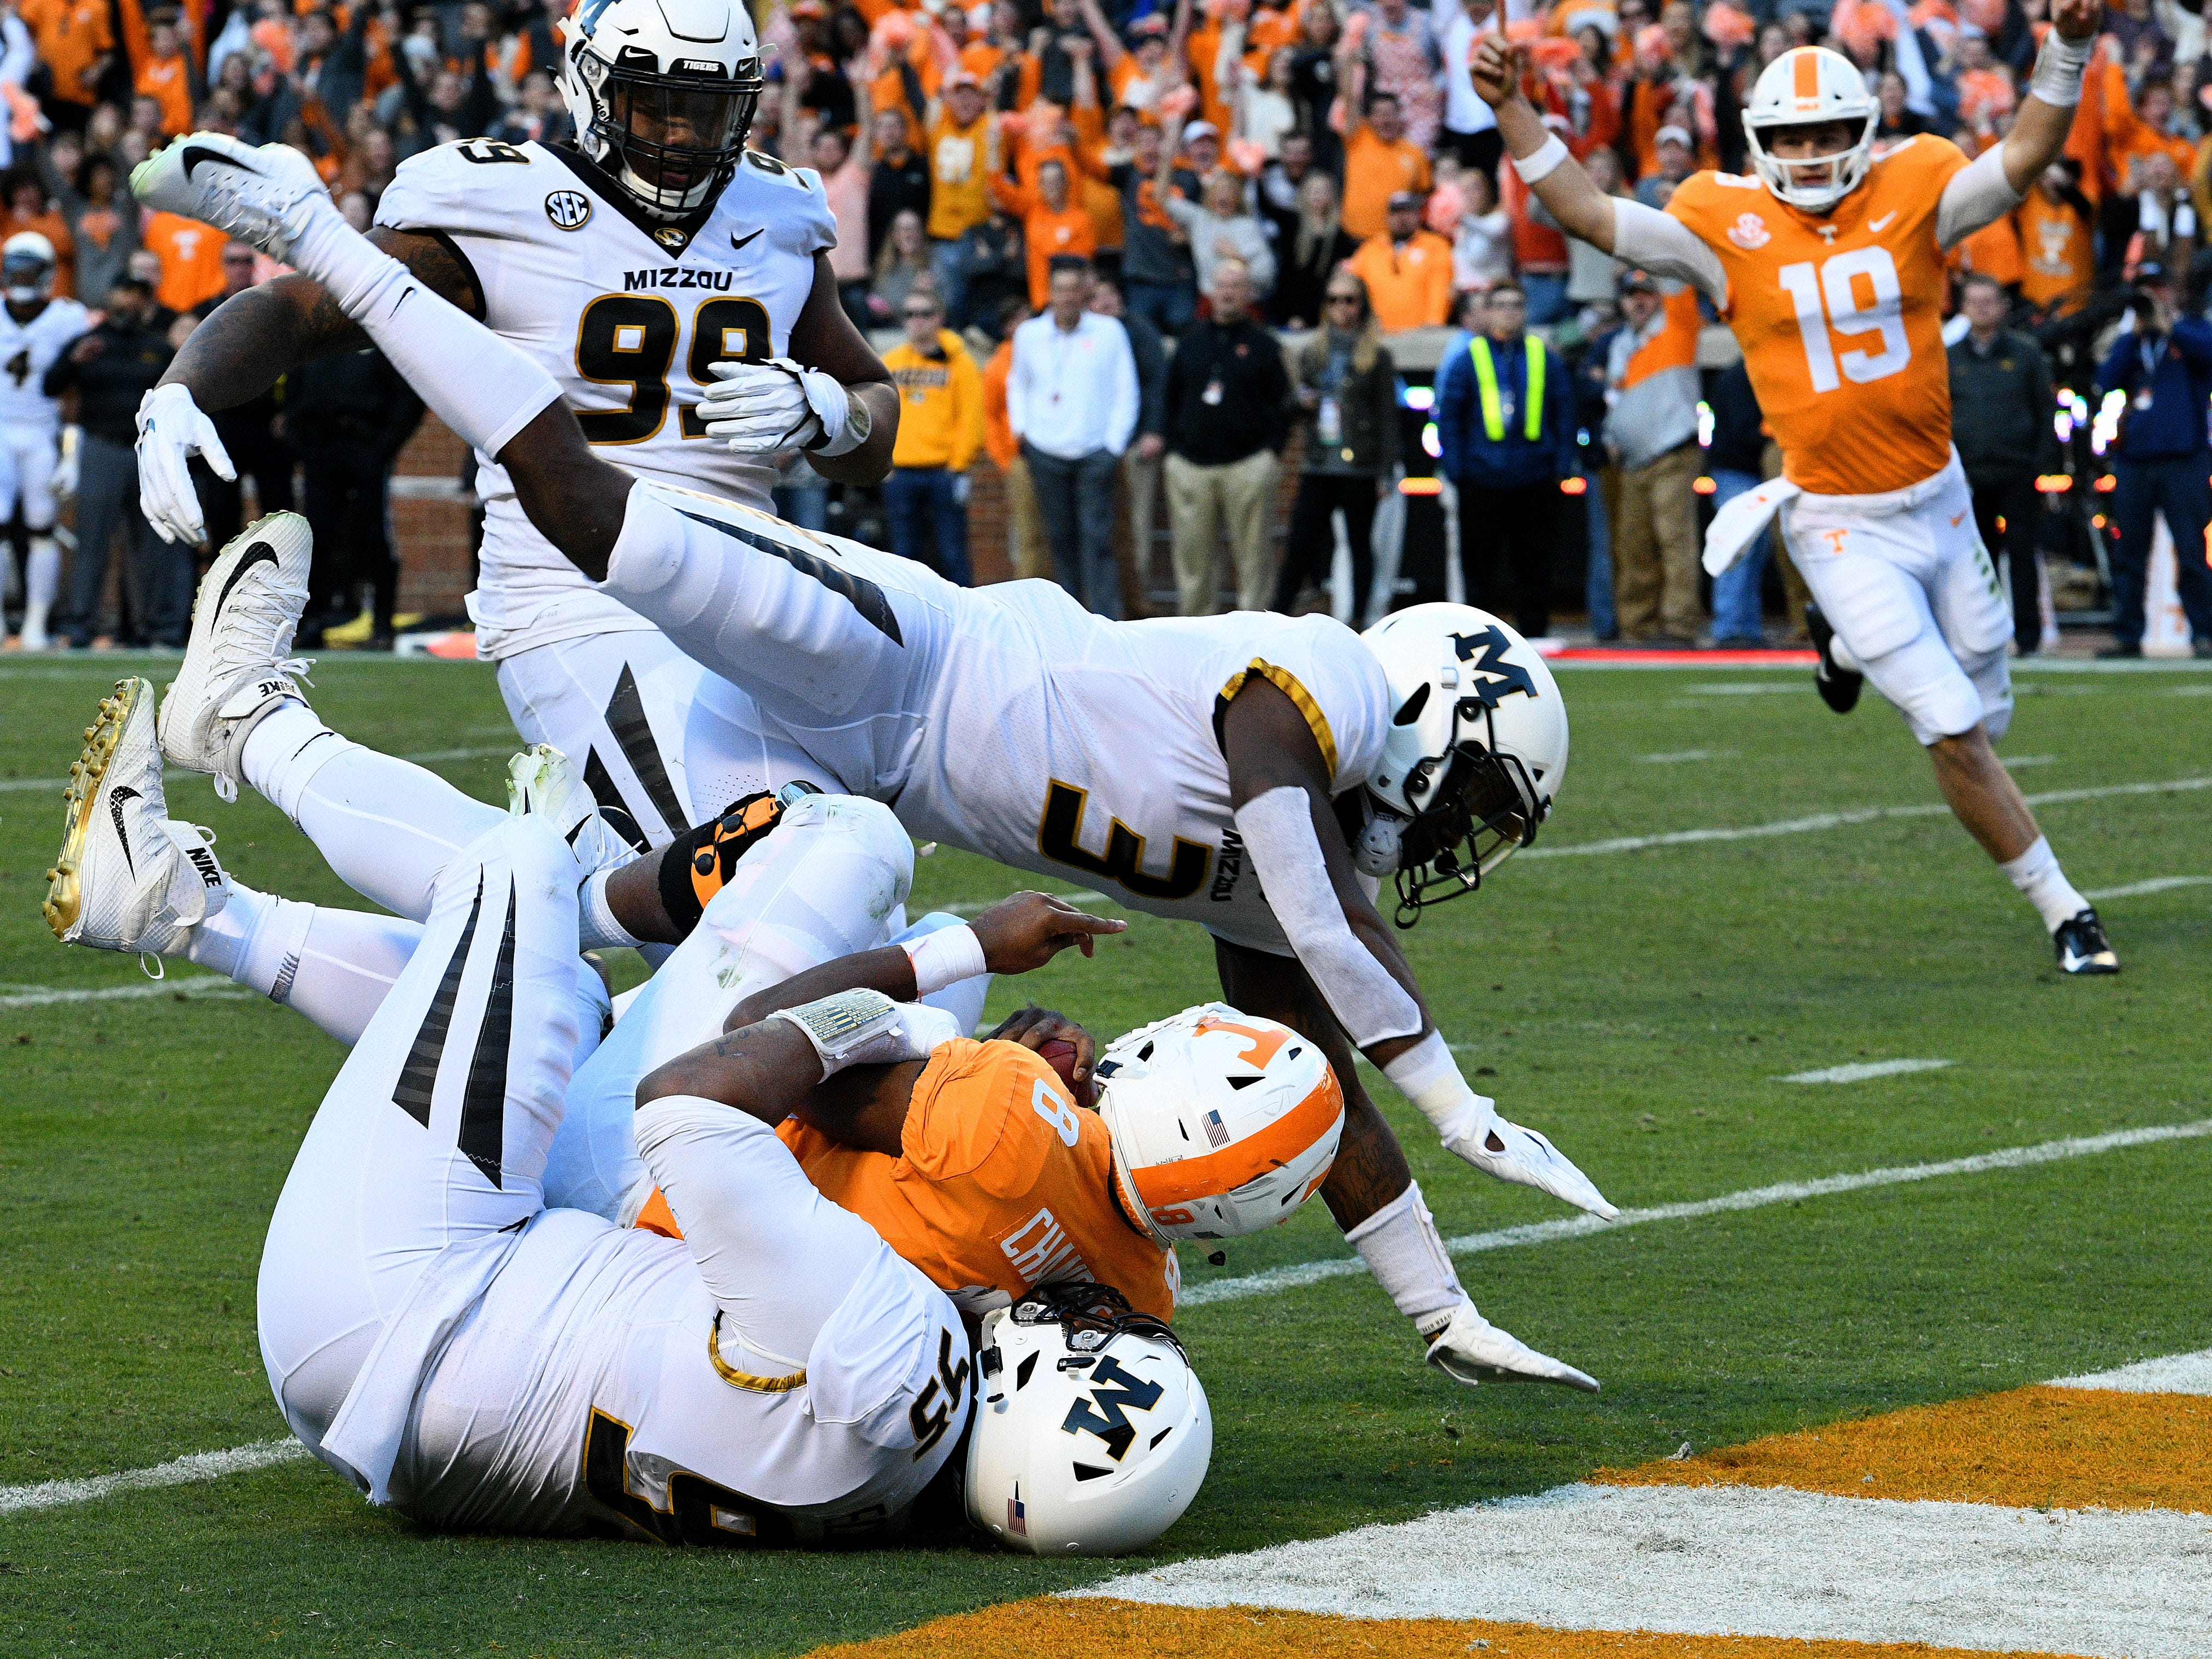 Tennessee running back Ty Chandler (8) scores touchdown  during first half action against Missouri Saturday, Nov. 17, 2018 at Neyland Stadium in Knoxville, Tenn.